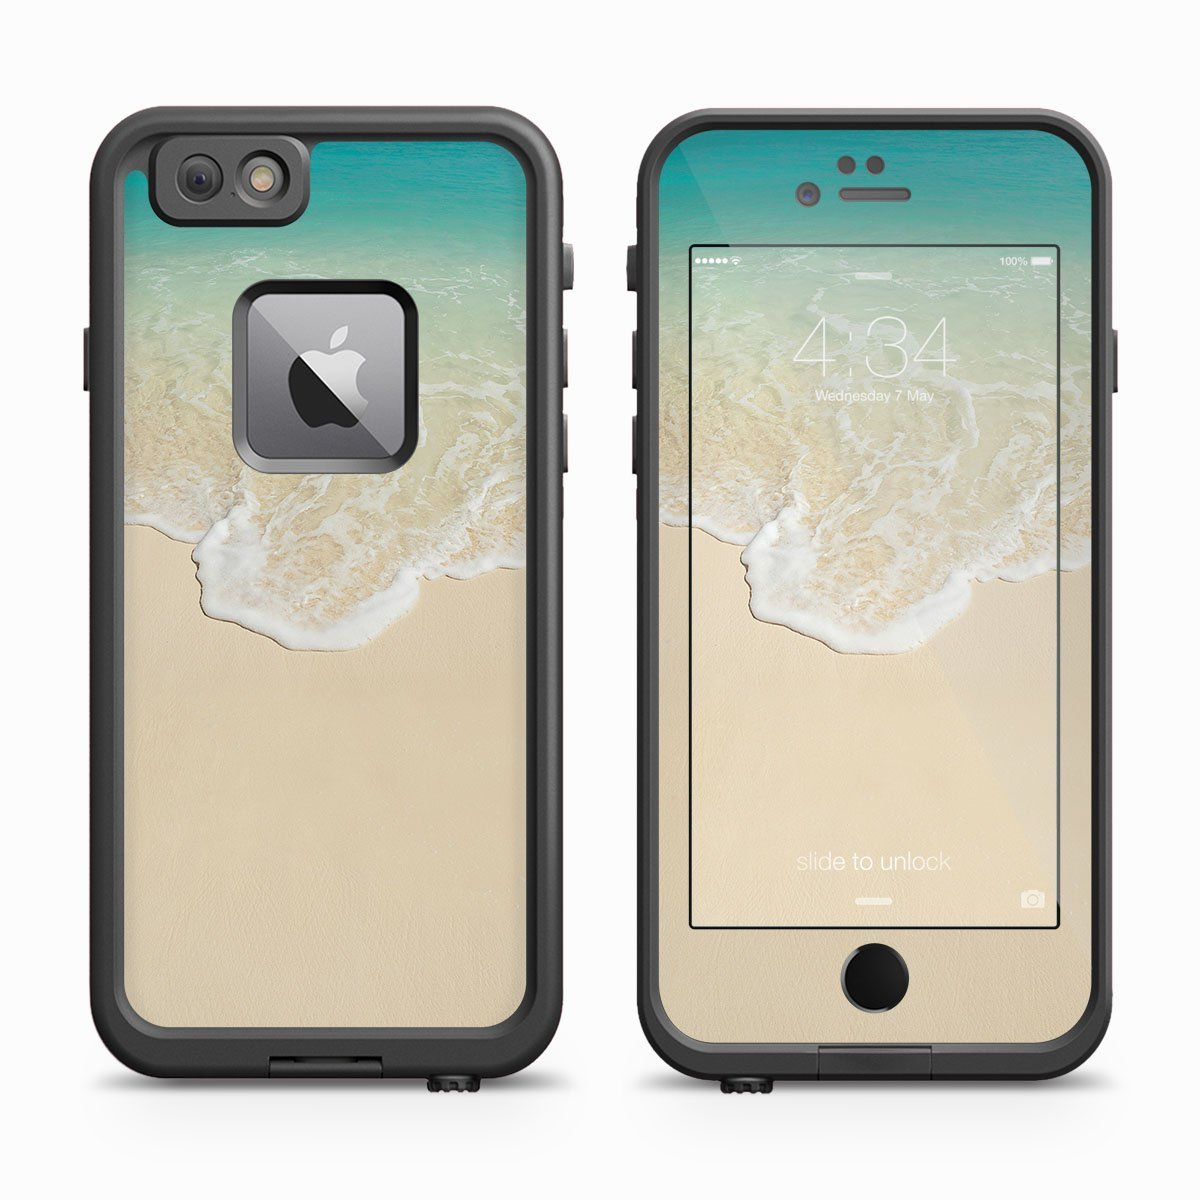 Best buy coupons for iphone cases